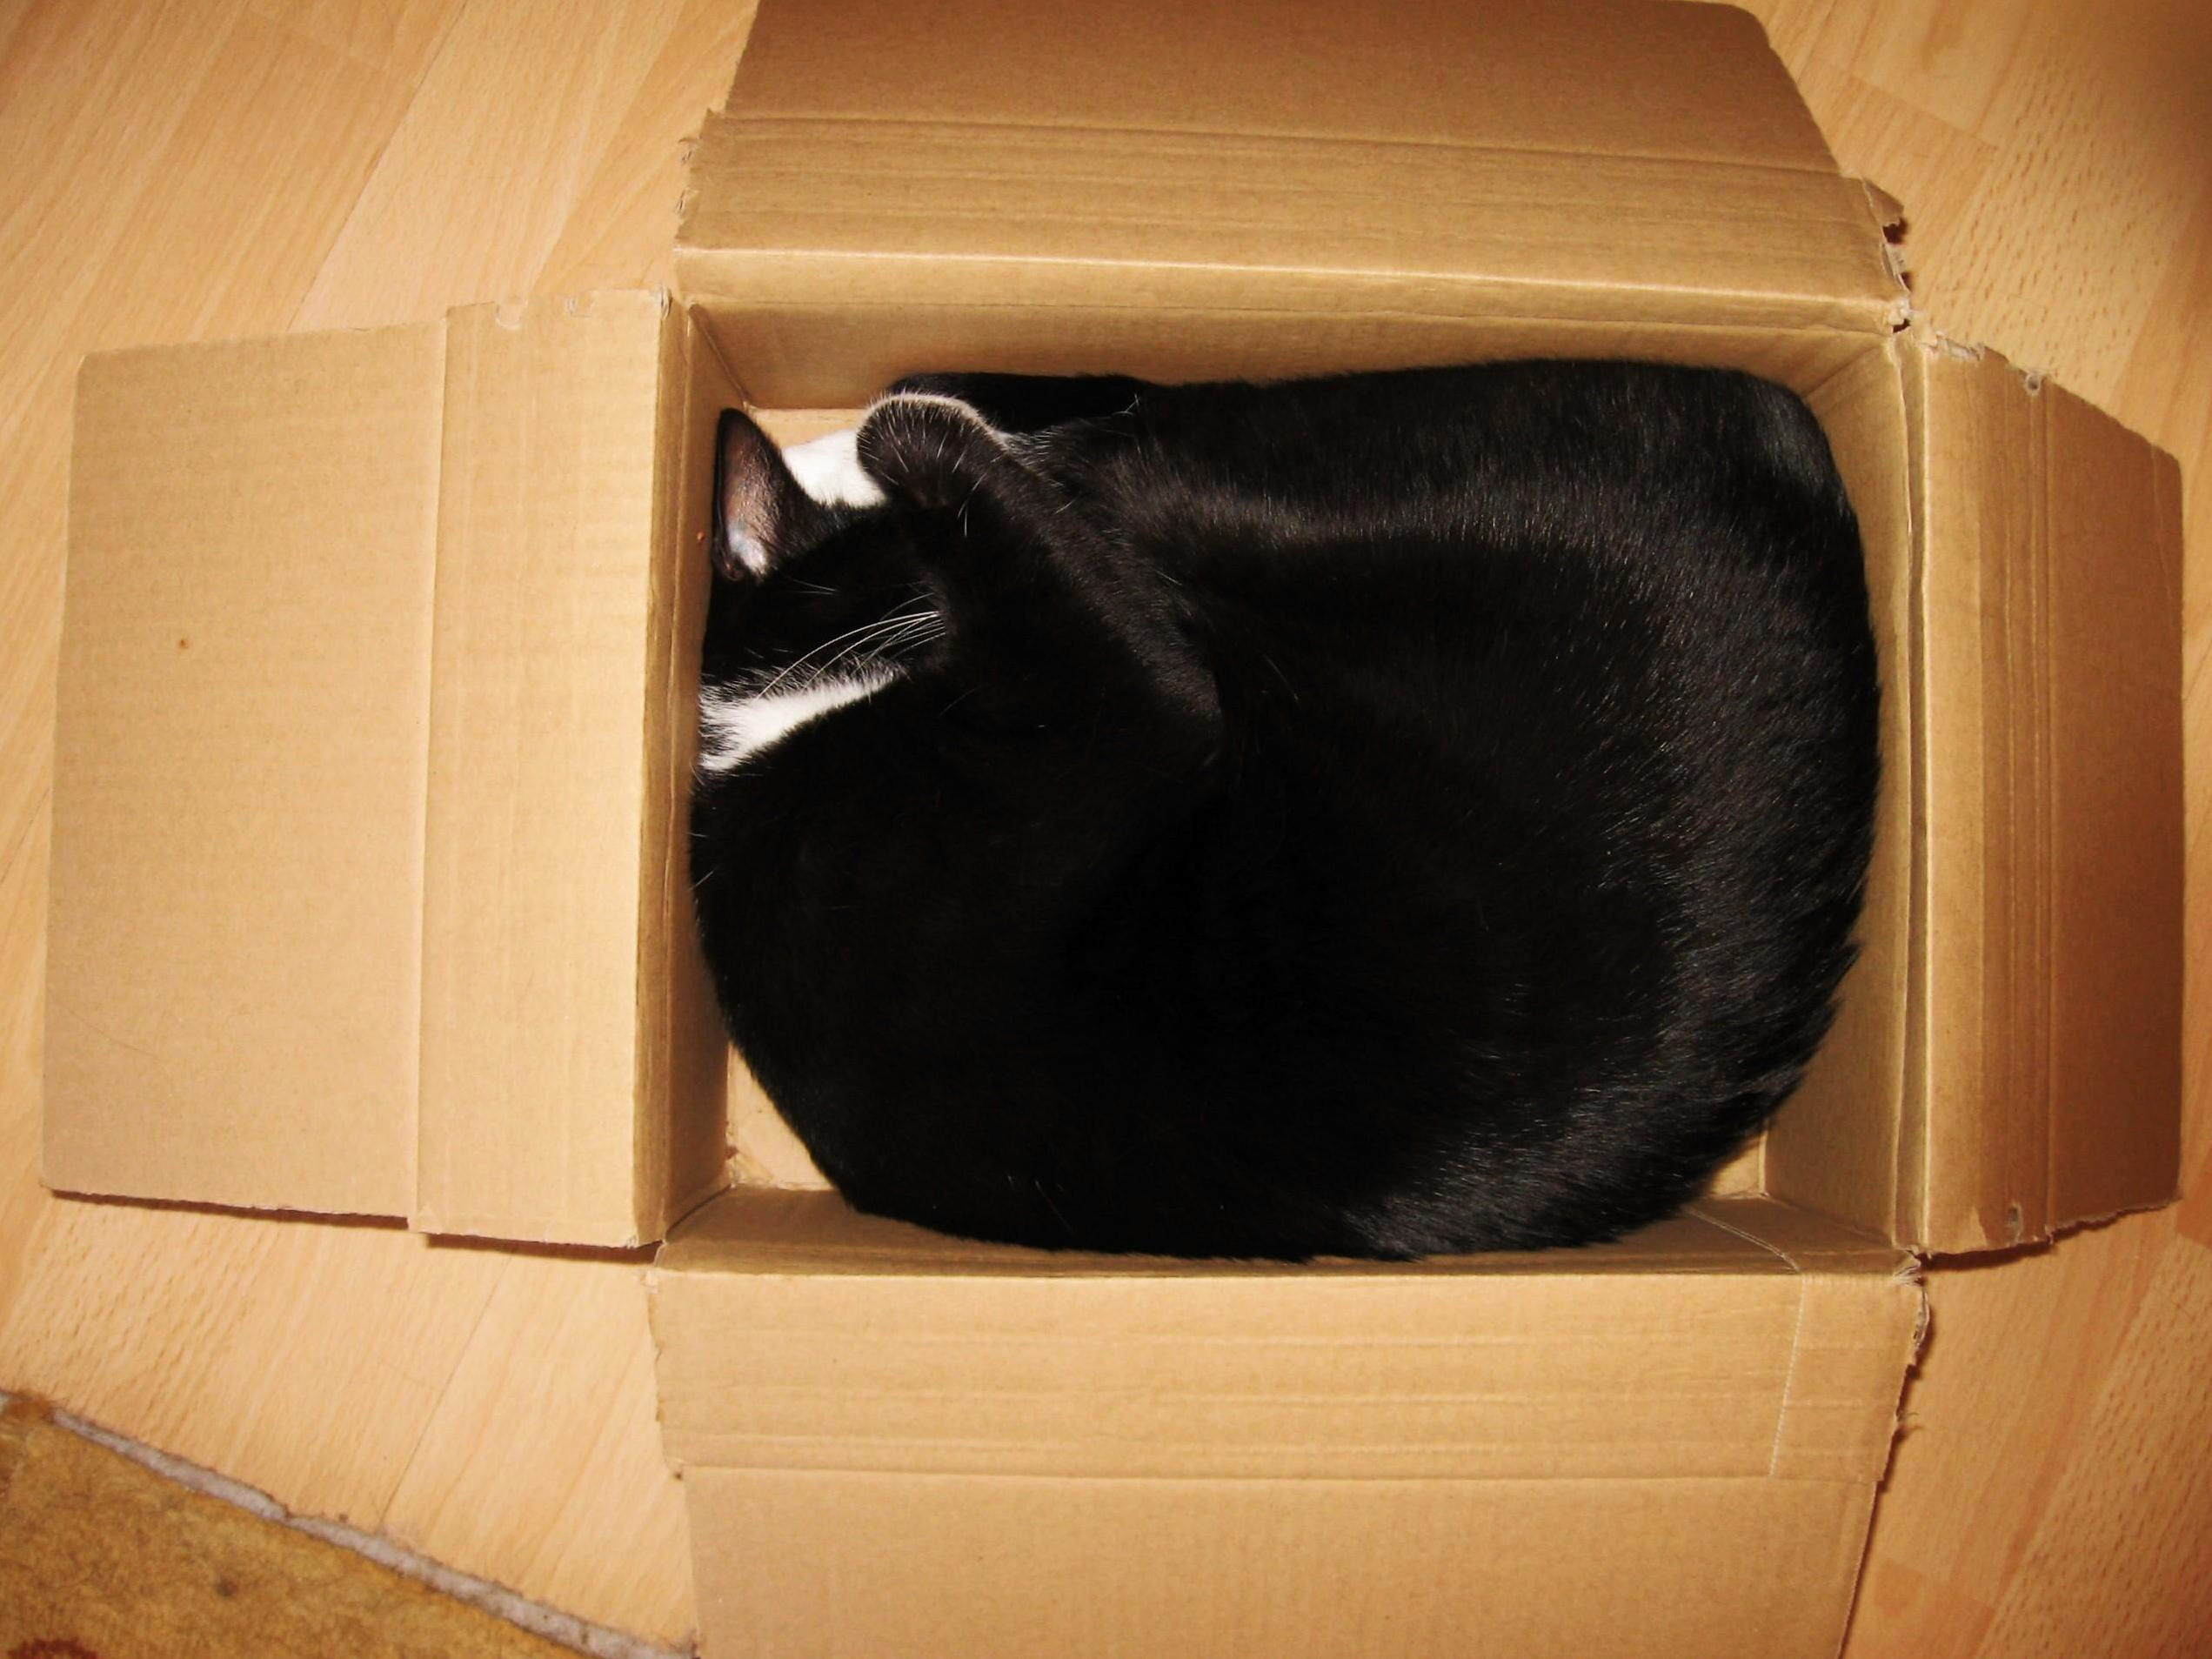 Sometimes i think i only order online for my cat to have something to sleep in